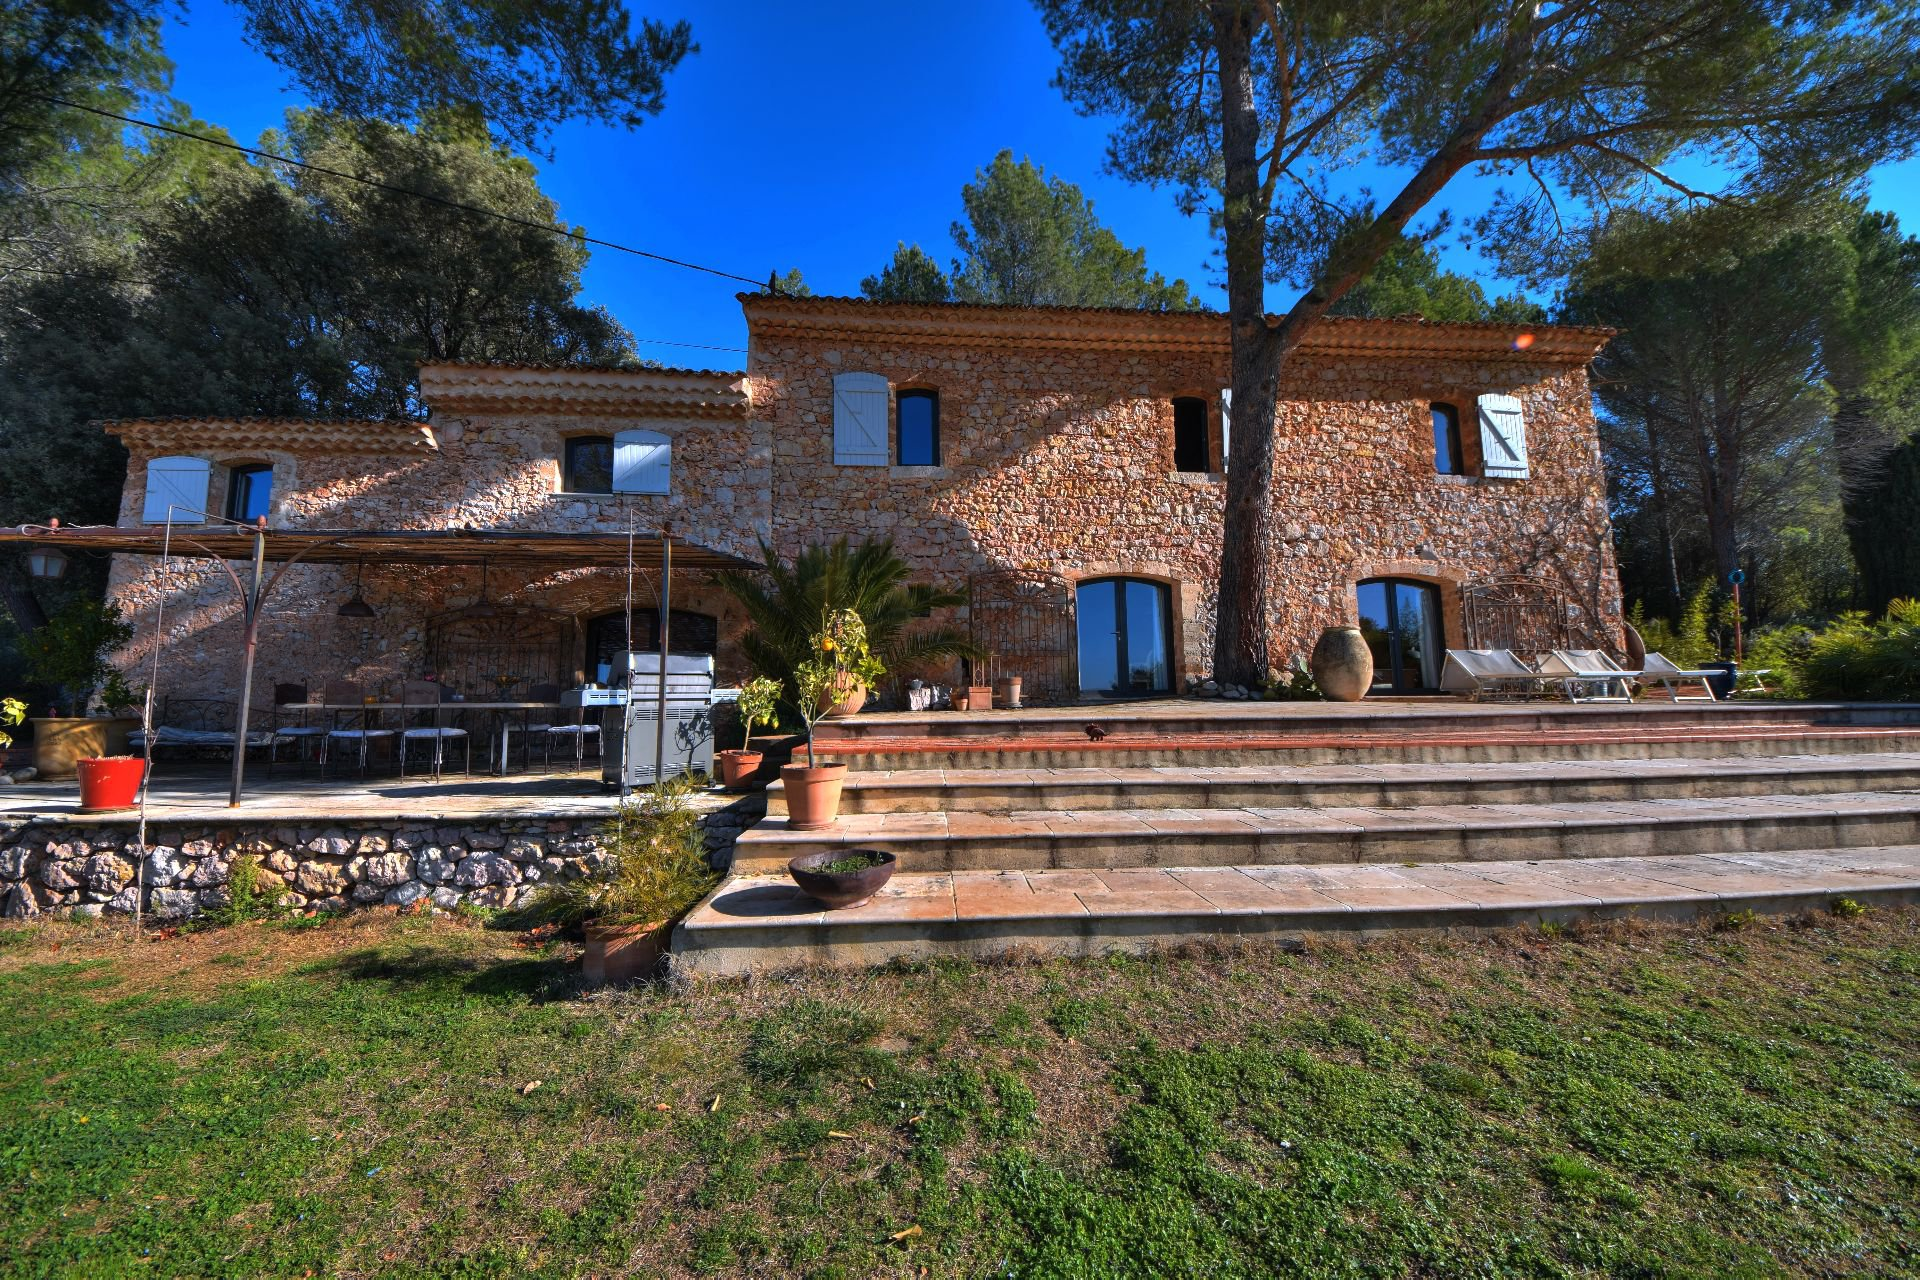 Superb renovated bastide with swimming pool - Olive trees and vineyards - Var Provenc